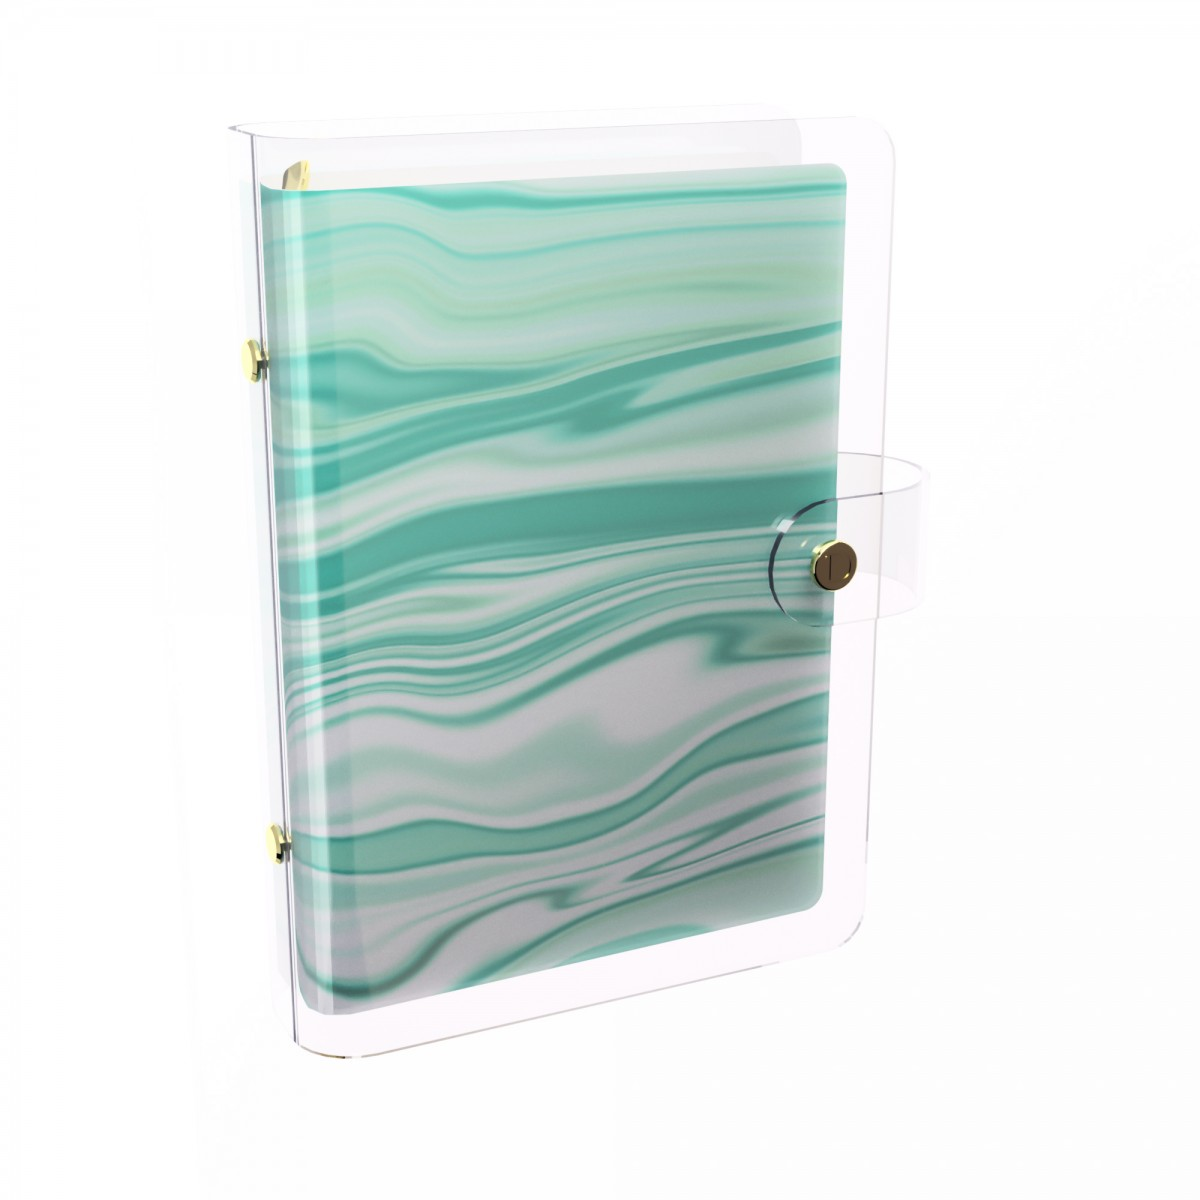 DISCAGENDA CLARITY CLEAR PVC PLANNER COVER - AGATE, RINGBOUND, PERSONAL SIZE